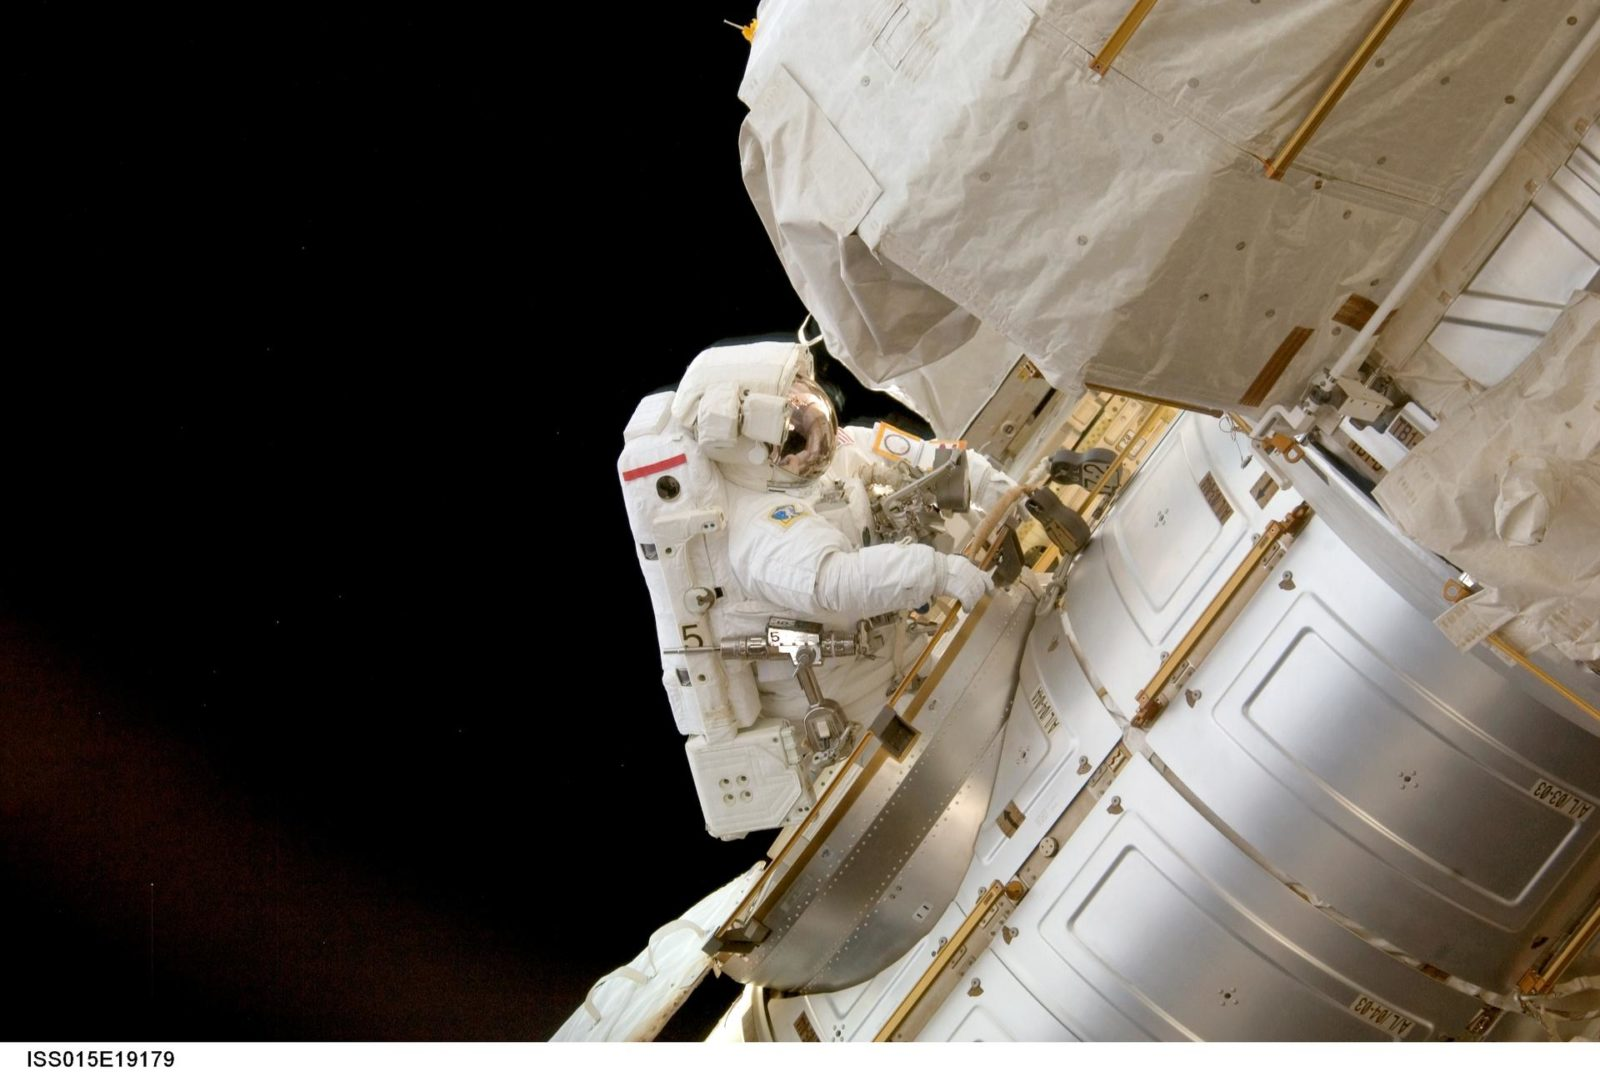 View of Anderson entering the Node 1 CBM after a session of EVA on Expedition 15